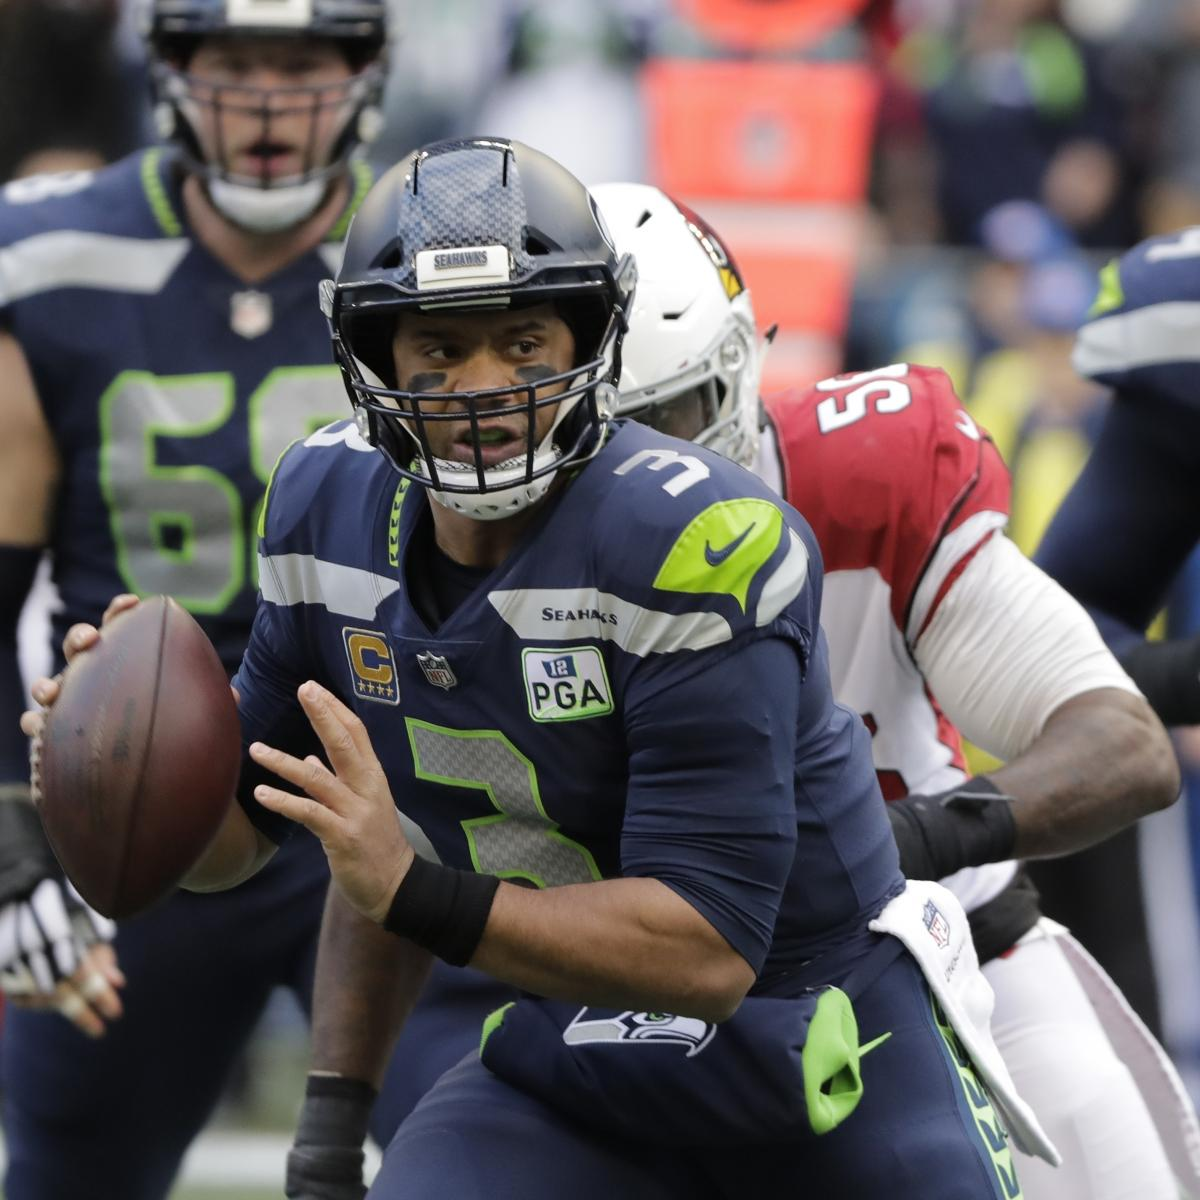 Seattle Seahawks Schedule: Seahawks Vs. Cowboys: Odds, Stat Predictions For 2019 NFC